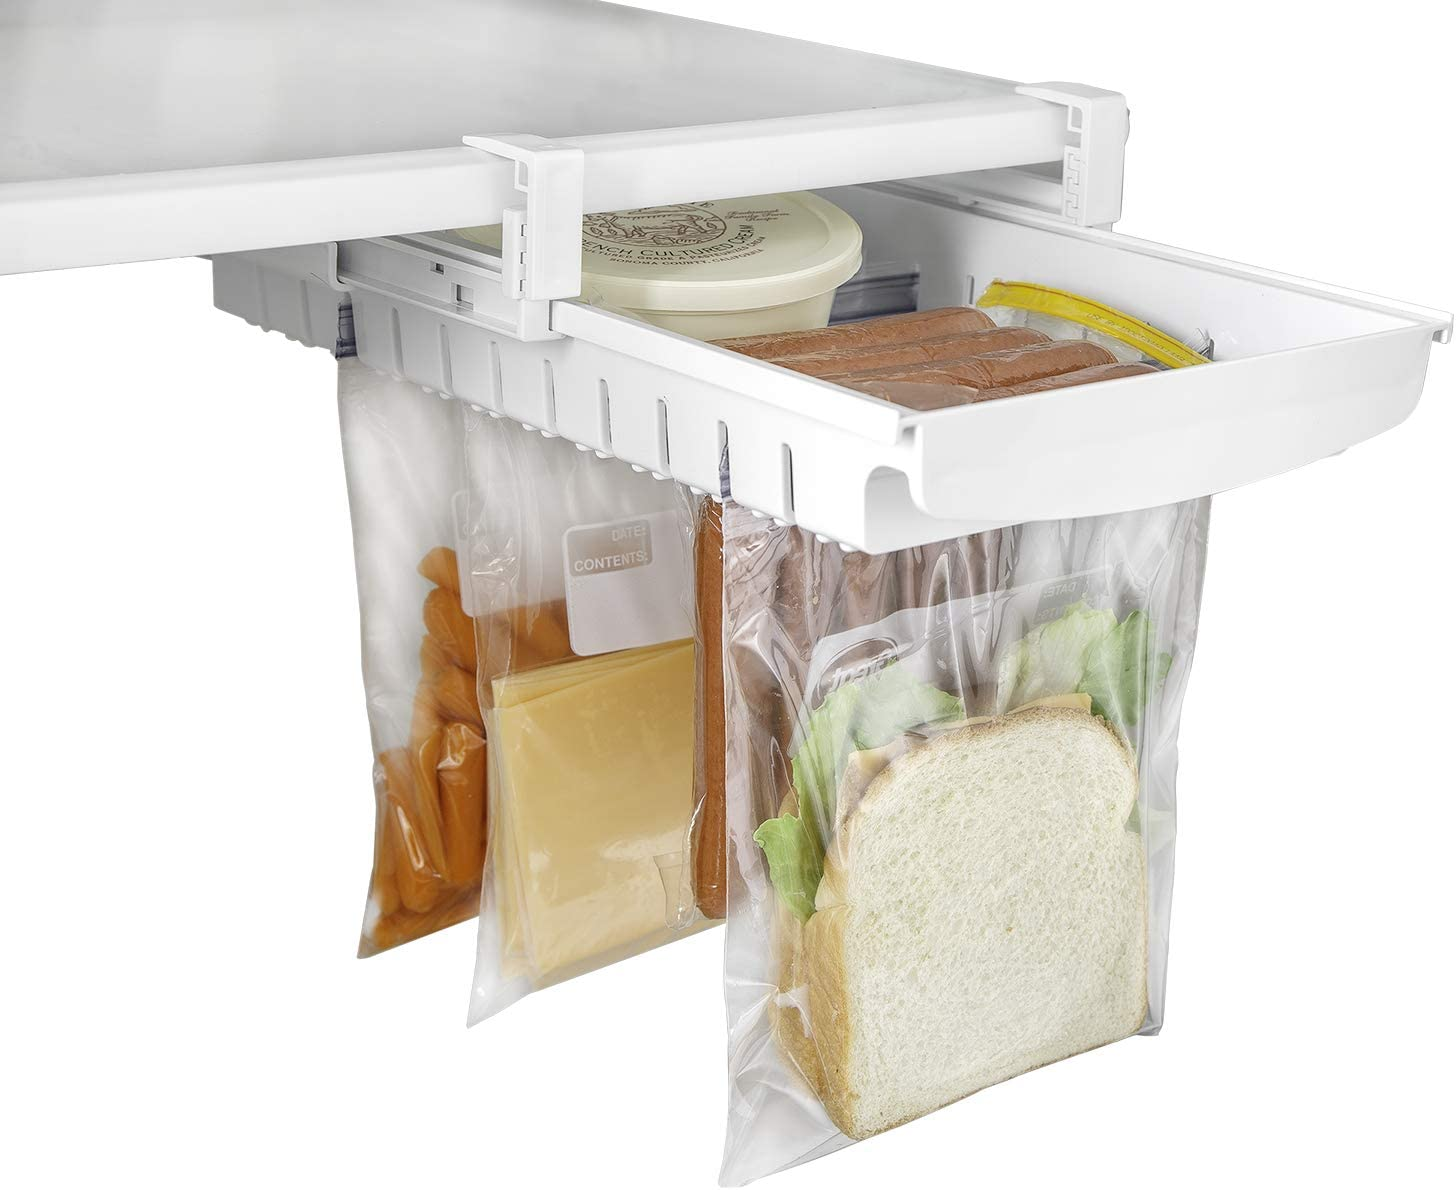 Smart Design Refrigerator Pull Out Bag Hanging Drawer & Home Organizer - Extendable Rails & Handle - Fridge, Freezer, Pantry Food Storage - BPA Free - Holds 15 lbs - Kitchen Clear